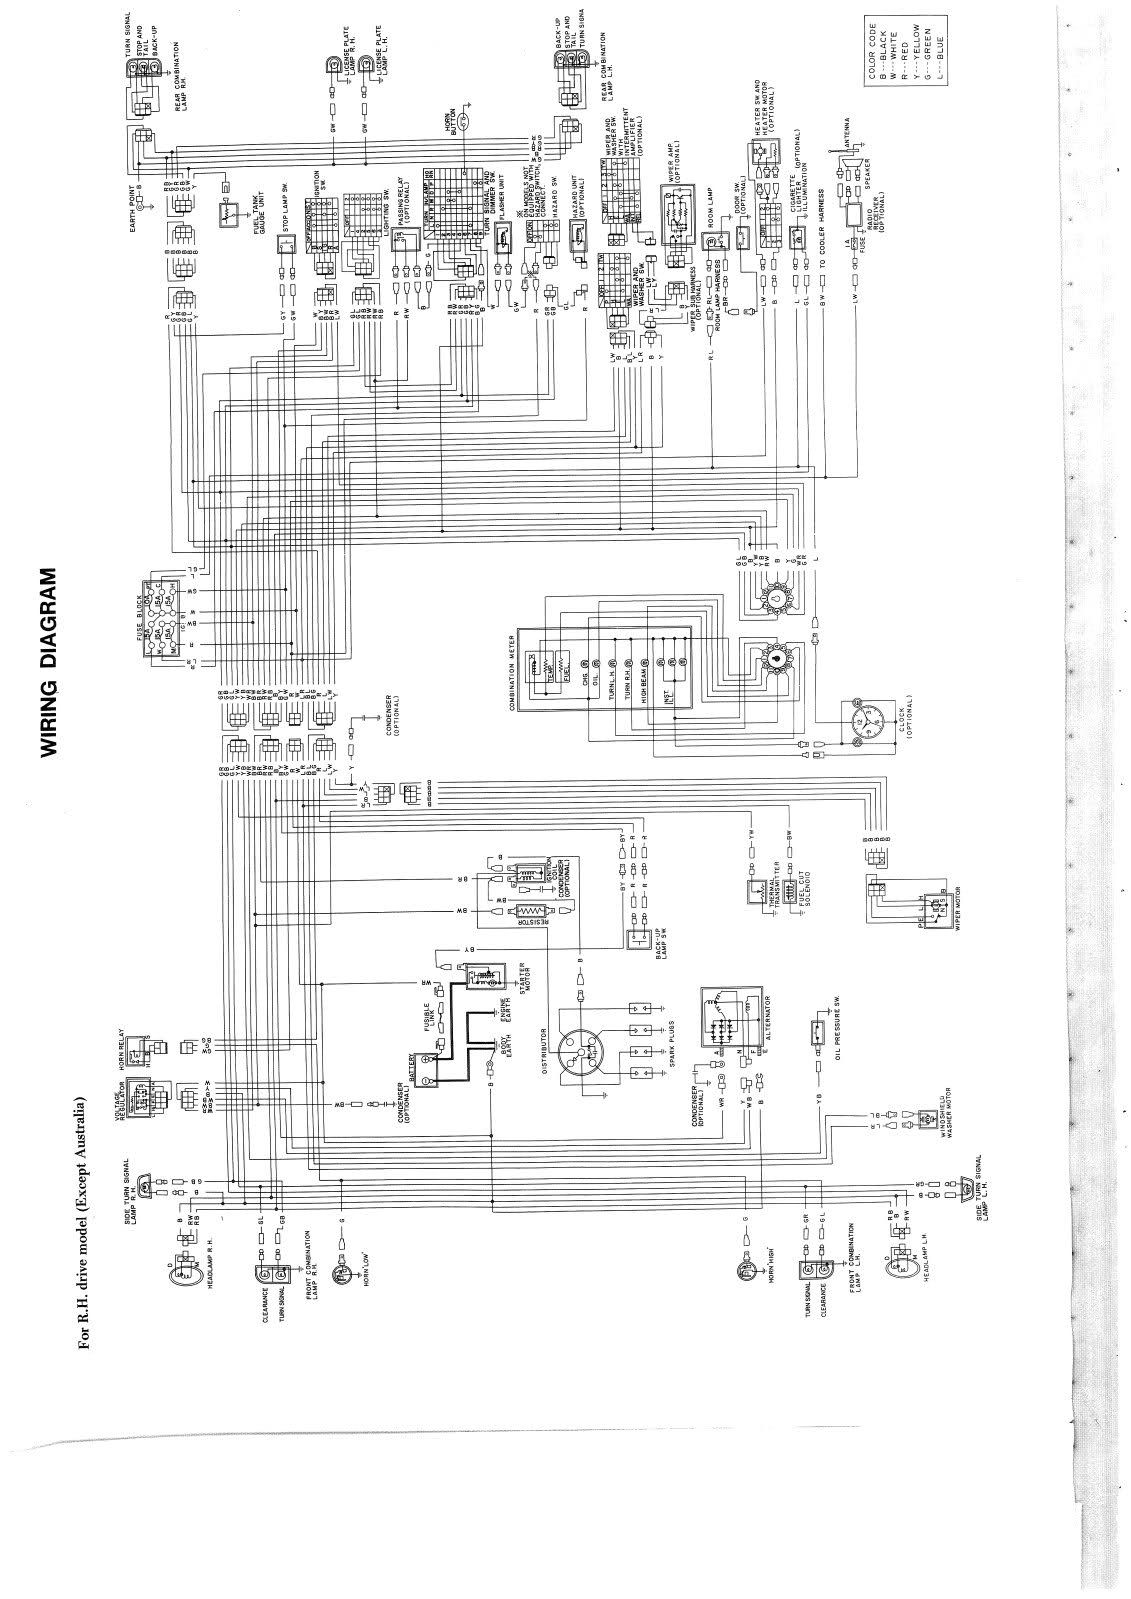 wiring diagram for nissan 1400 bakkie 6 [ 1131 x 1599 Pixel ]